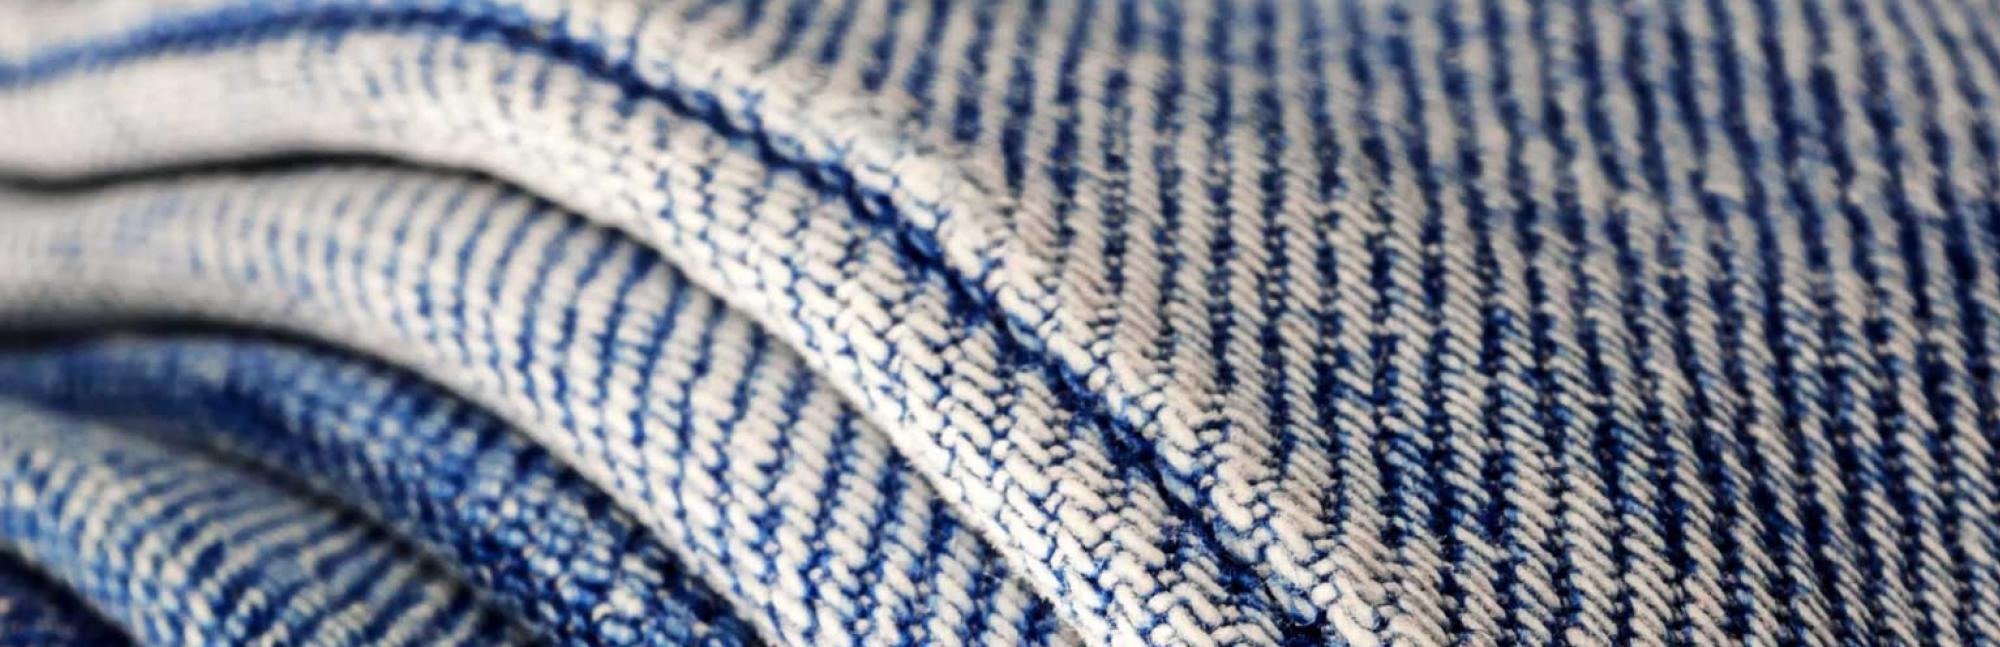 Close up of denim fabric